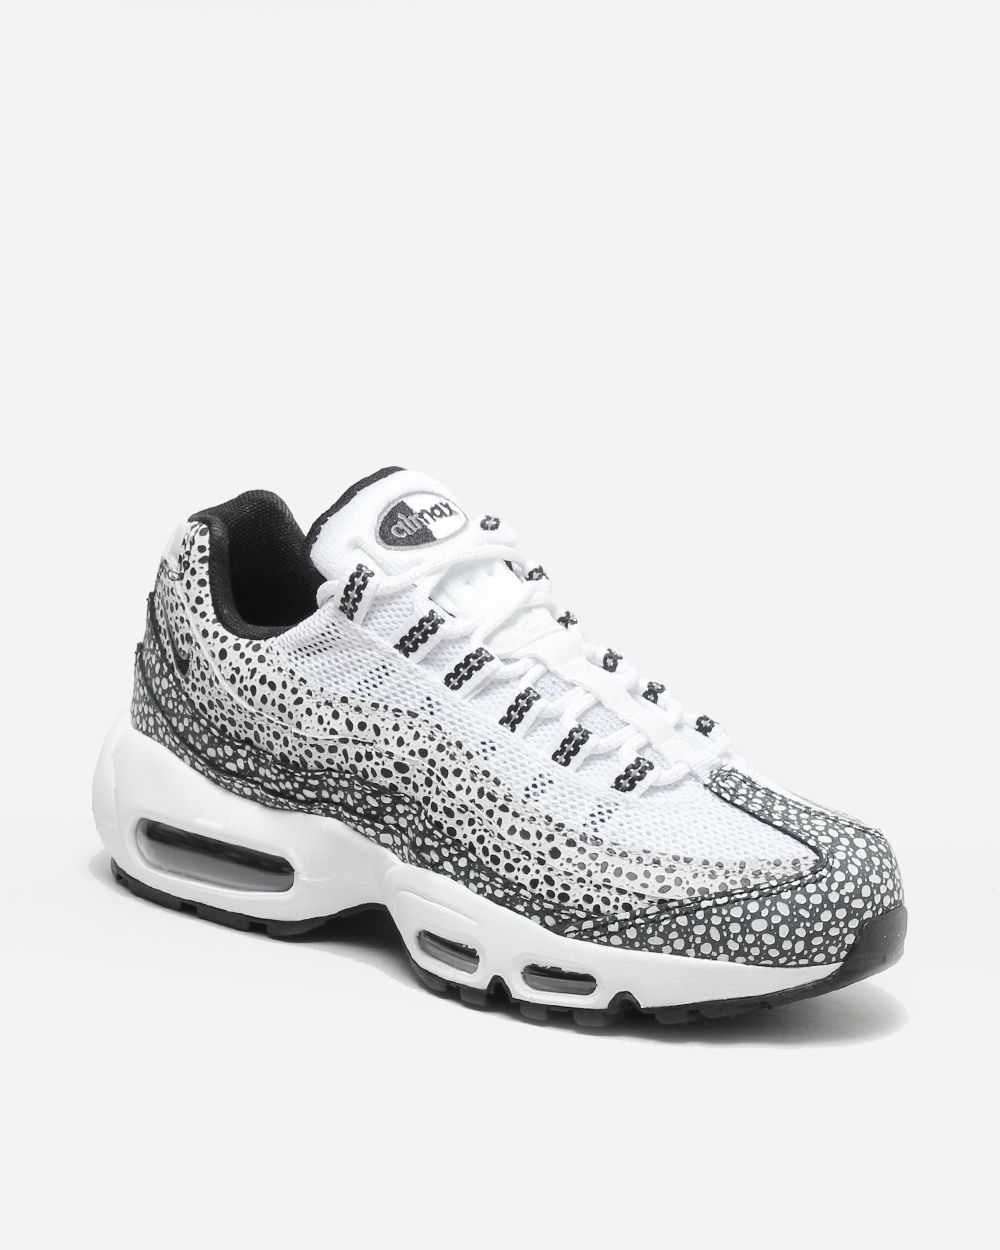 new product 2d36a 81f5a SIZE AND FIT This sneaker runs true to size DESCRIPTION The Air Max 95 gets  a cool rework in this premium edition. Inspired by the human body, ...